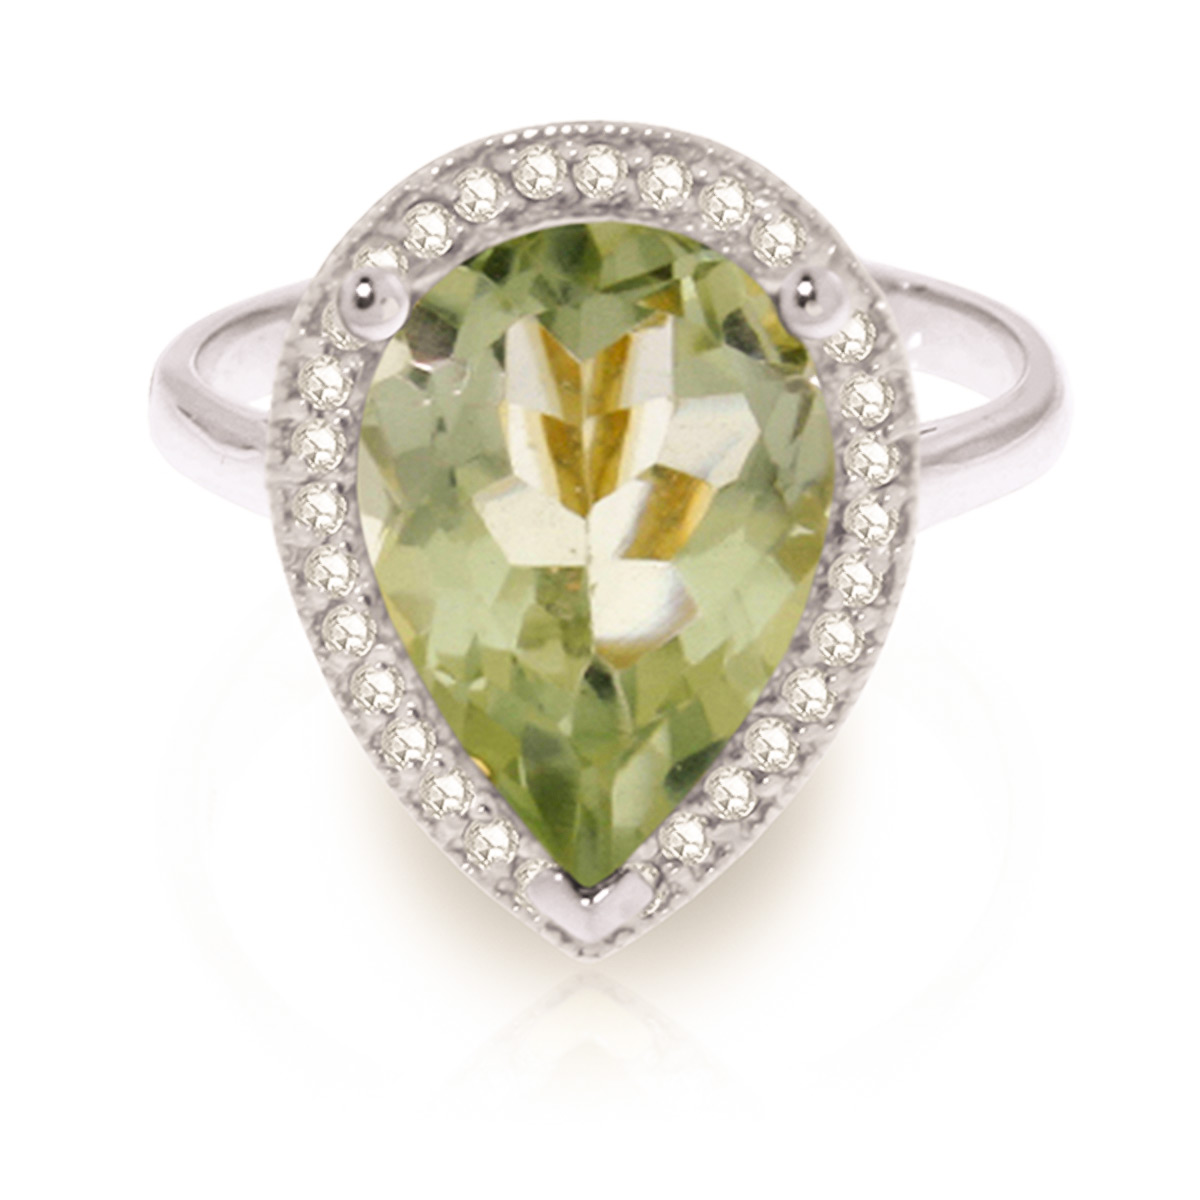 Green Amethyst and Diamond Halo Ring 3.25ct in 9ct White Gold